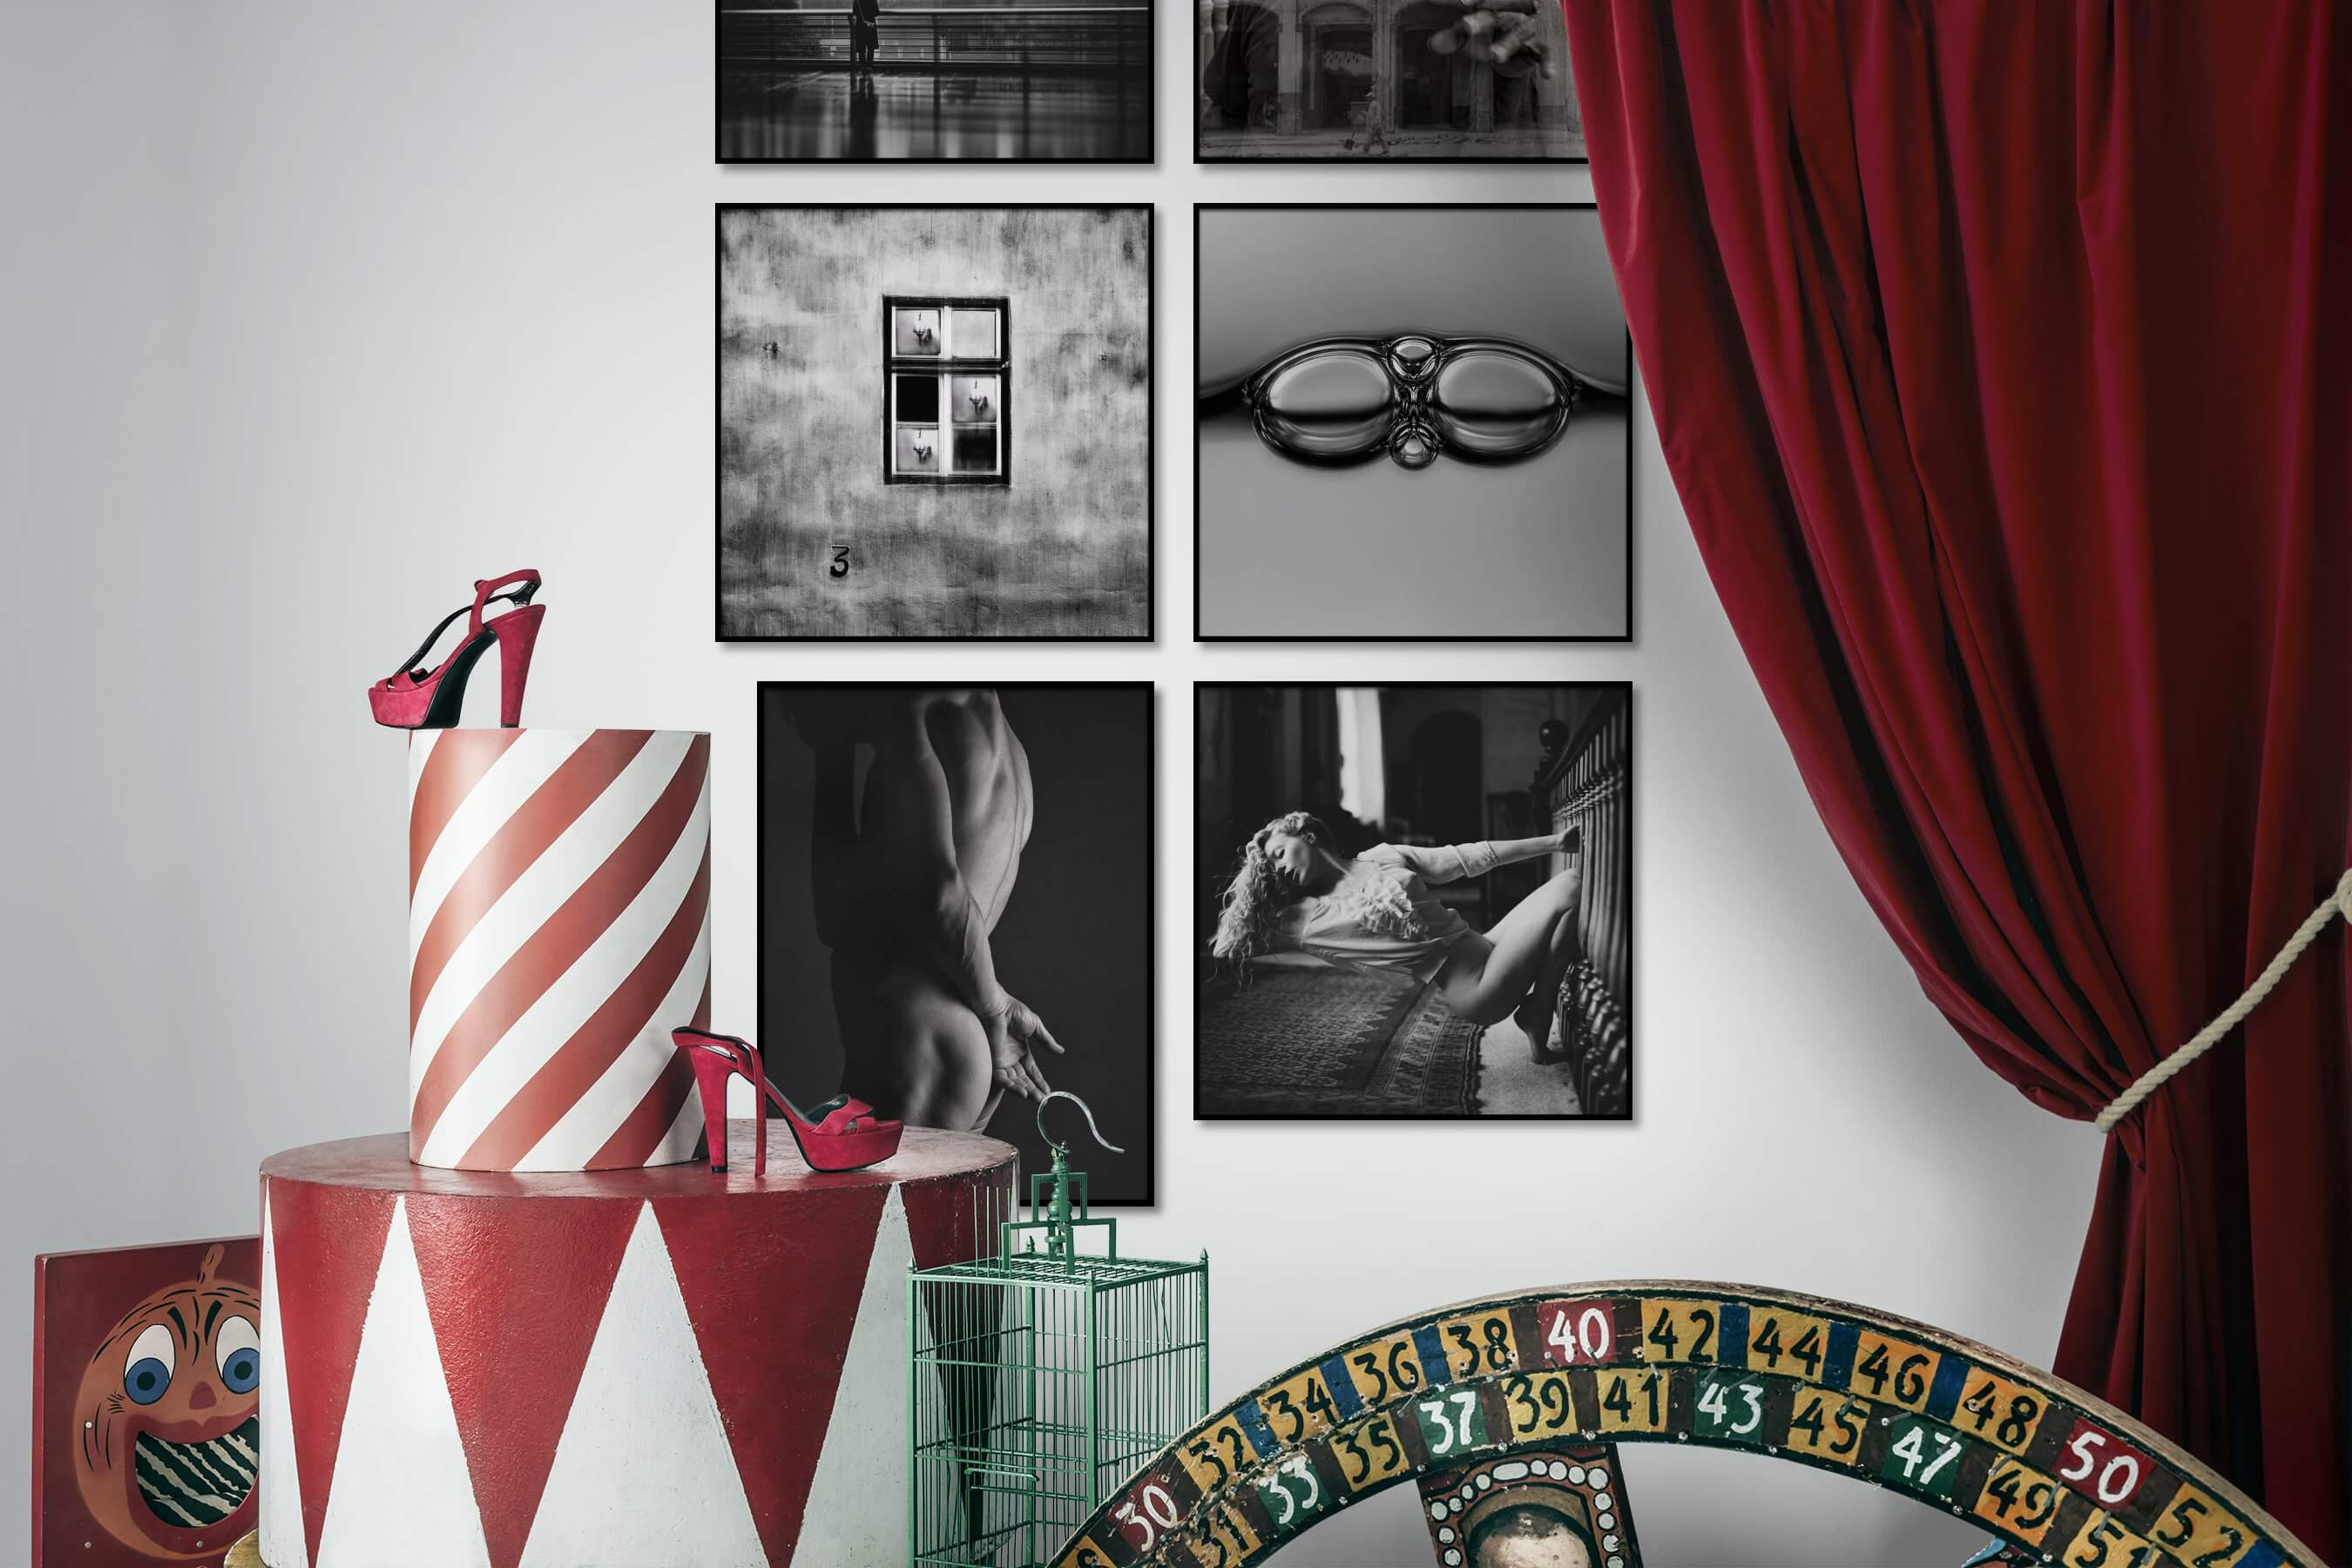 Gallery wall idea with six framed pictures arranged on a wall depicting Black & White, City Life, Vintage, For the Minimalist, Fashion & Beauty, and Bold